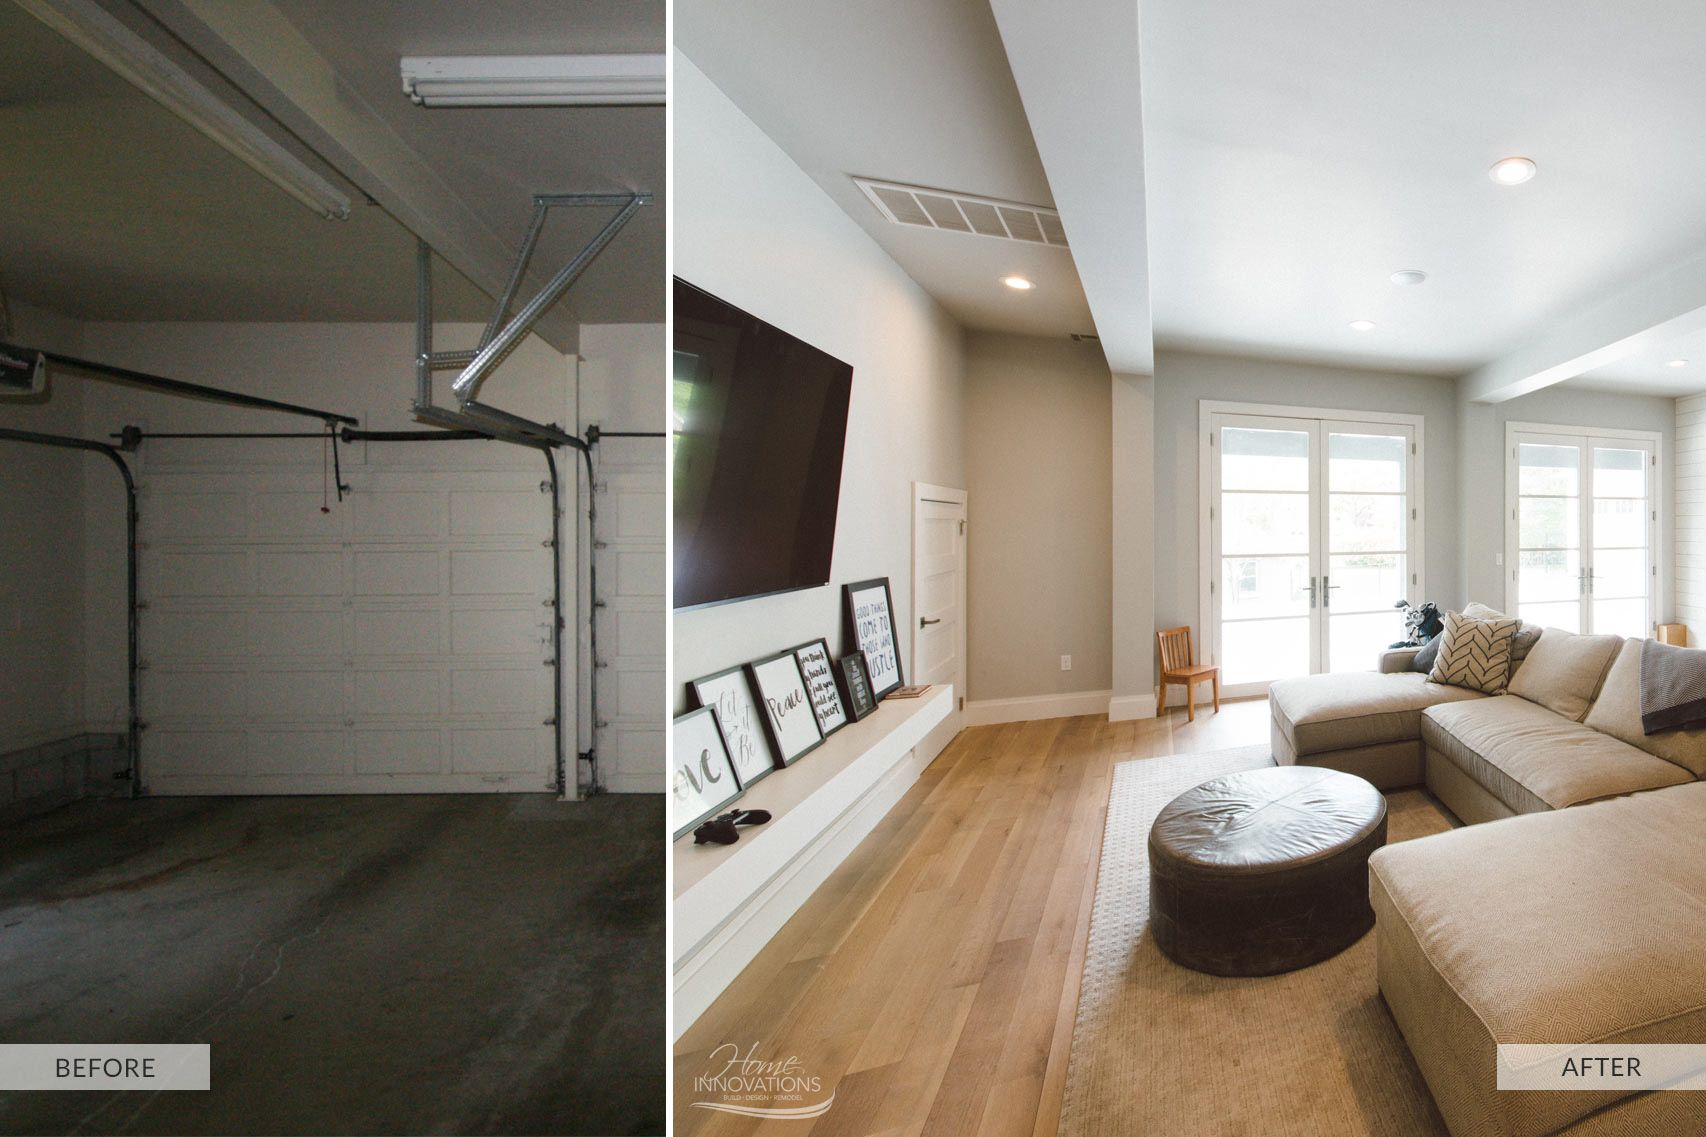 Garage Remodel Before and After transformed into